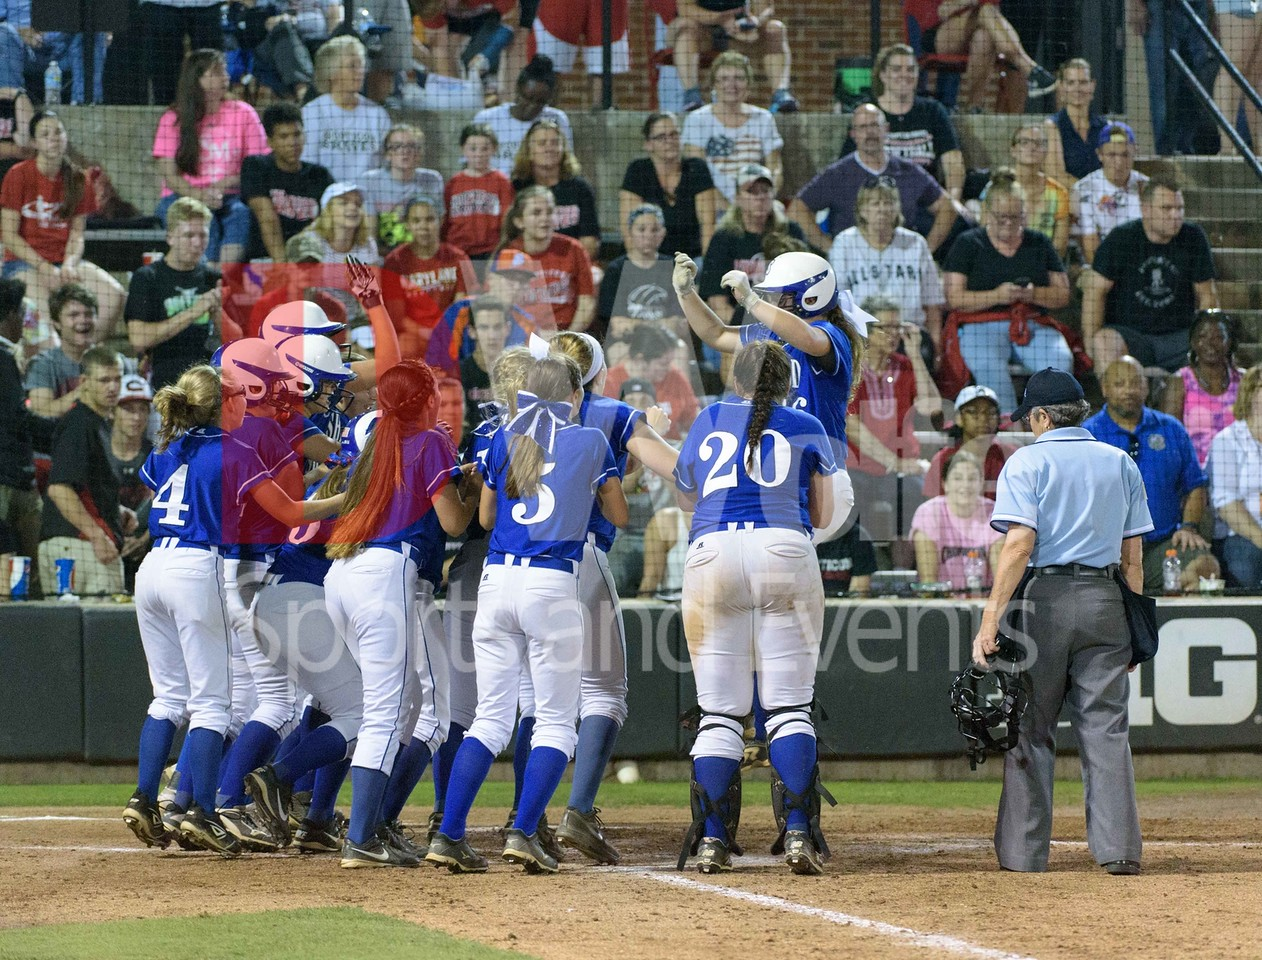 The whole Sherwood team rushes home plate to welcome ( senior Kara Carney?) who hit a home run ball out of the park to seal Sherwood's 5th straight Maryland 4A championship win in softball.